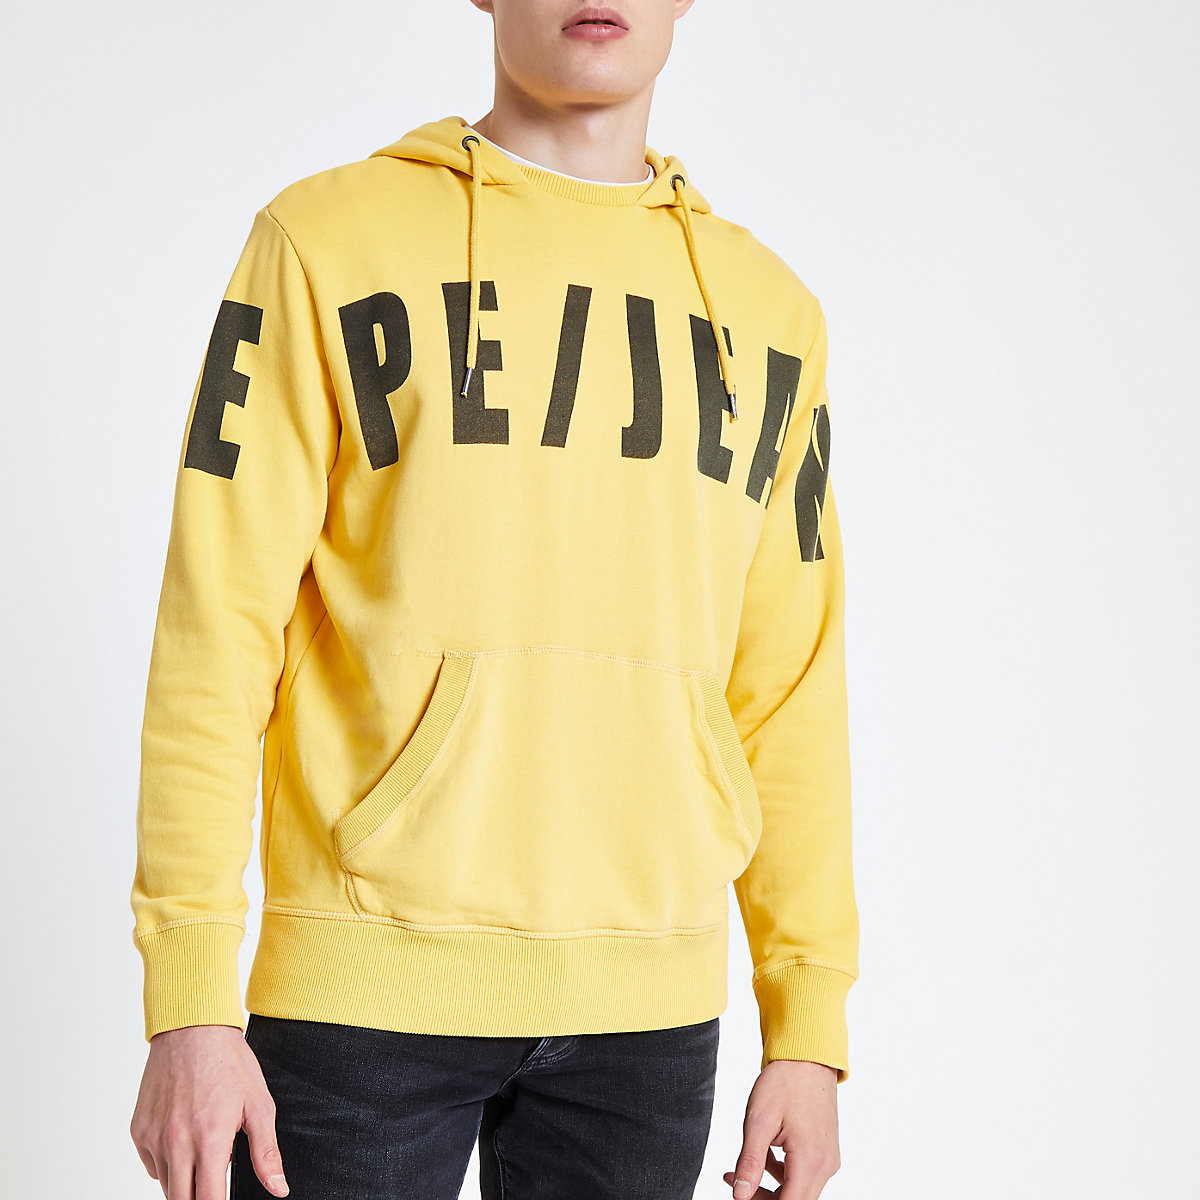 Pepe Jeans yellow hoodie